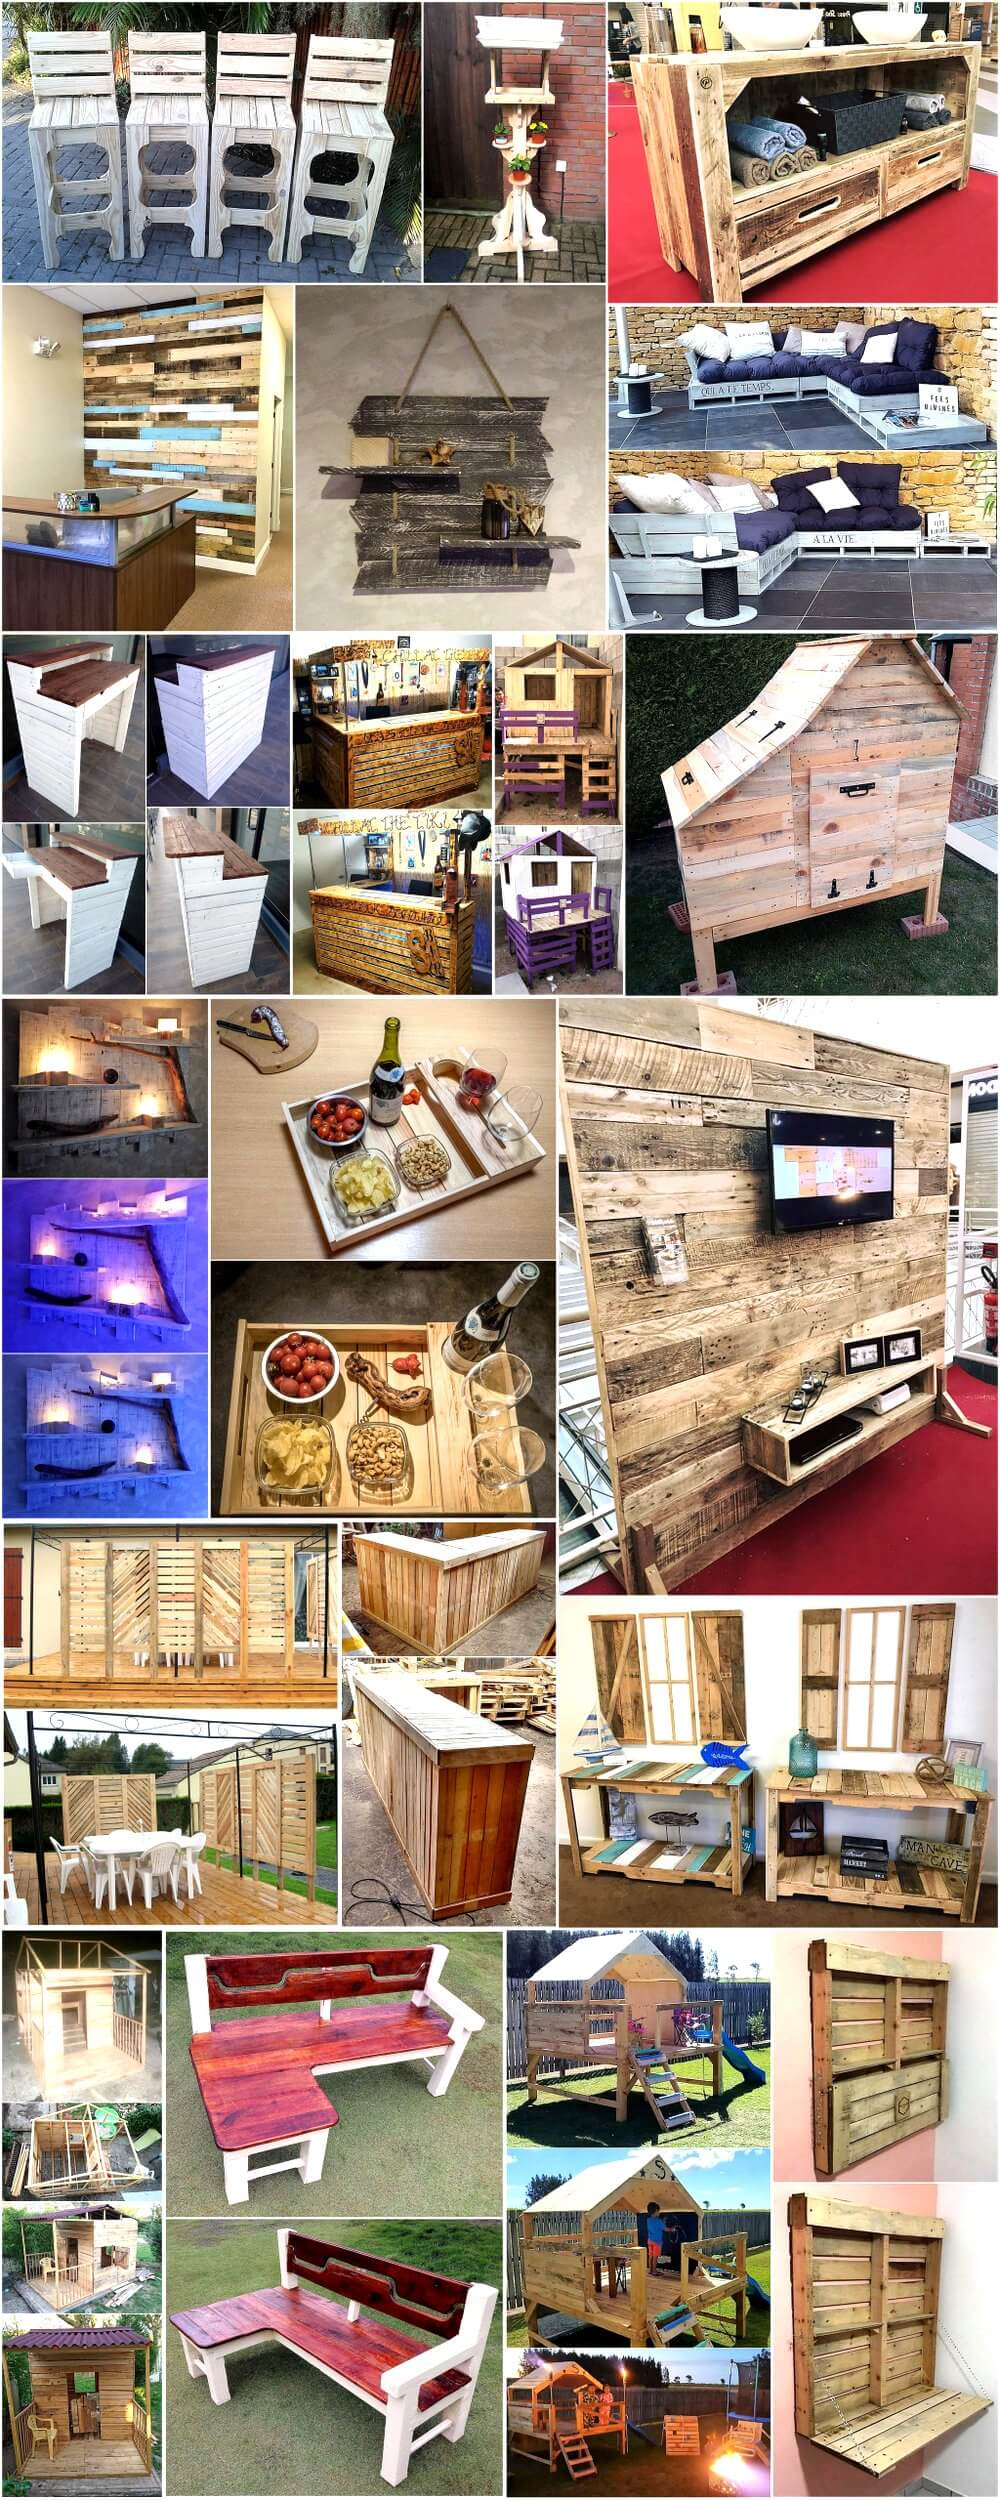 Find These Interesting Ideas For Pallets Recycling